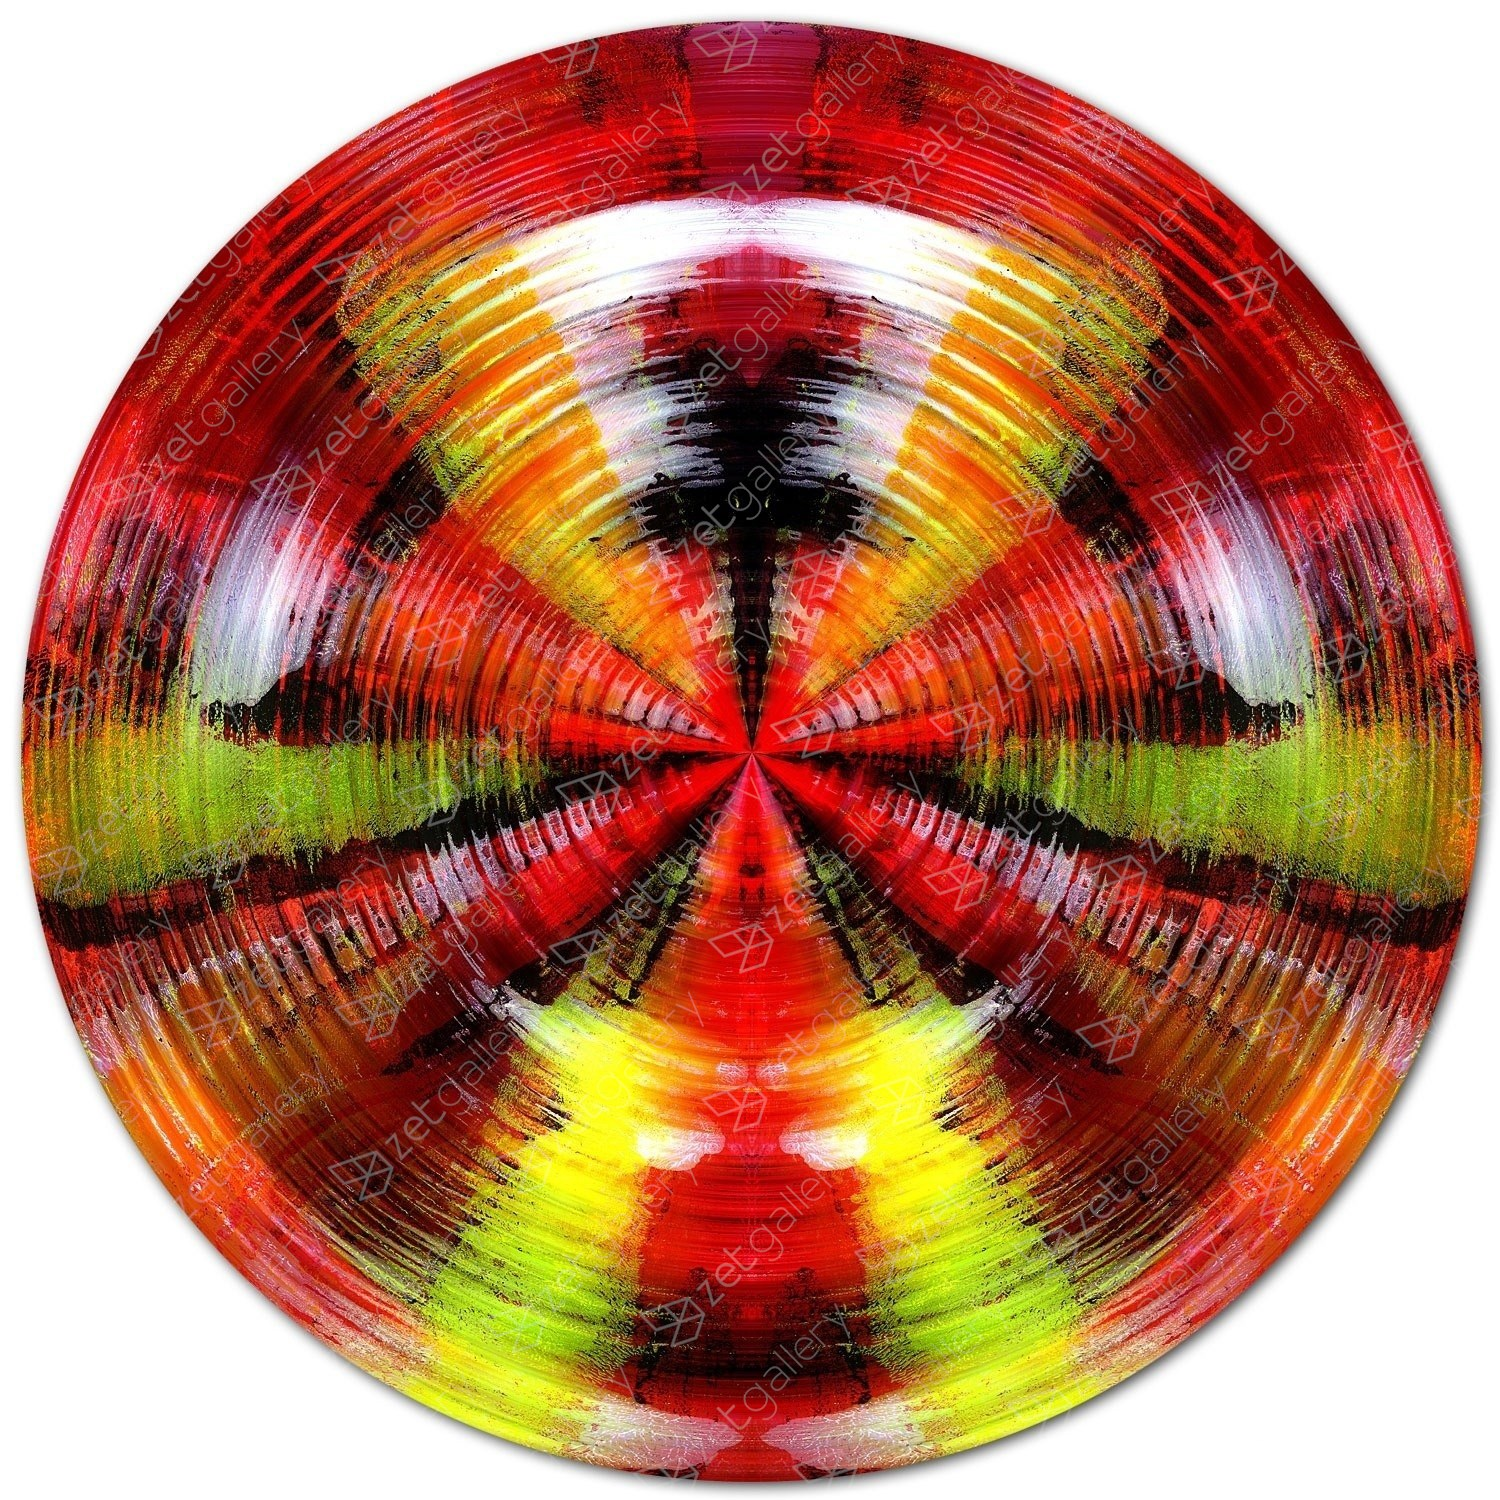 CIRCULAR COLORBURST, Ø 120 cm, original Abstract Digital Photography by Sven Pfrommer